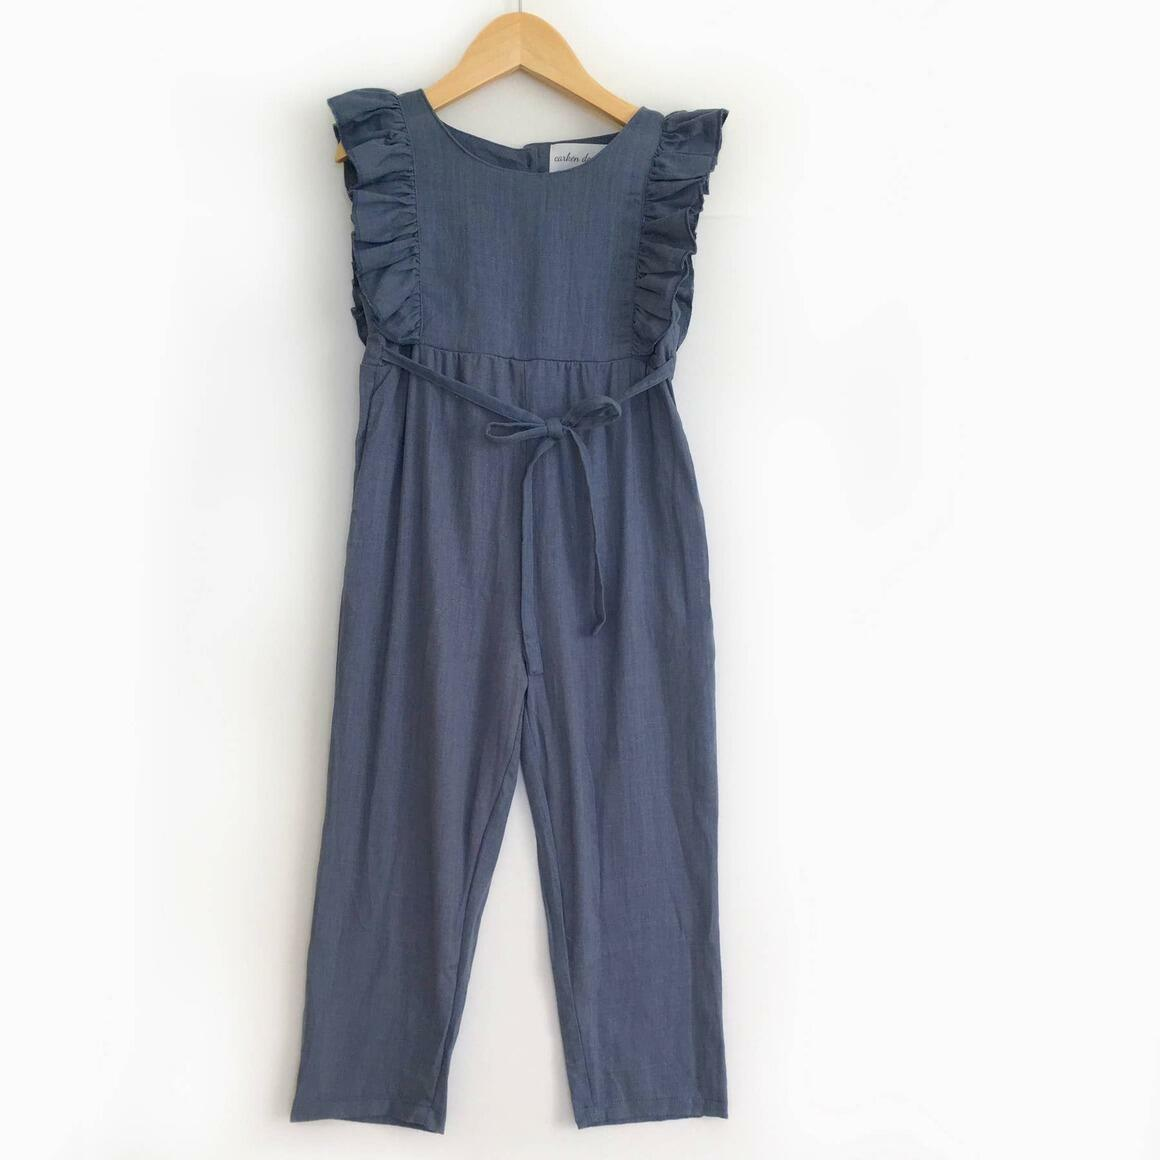 Navy Blue Linen Ruffle Romper with Pants - PREORDER | Trada Marketplace